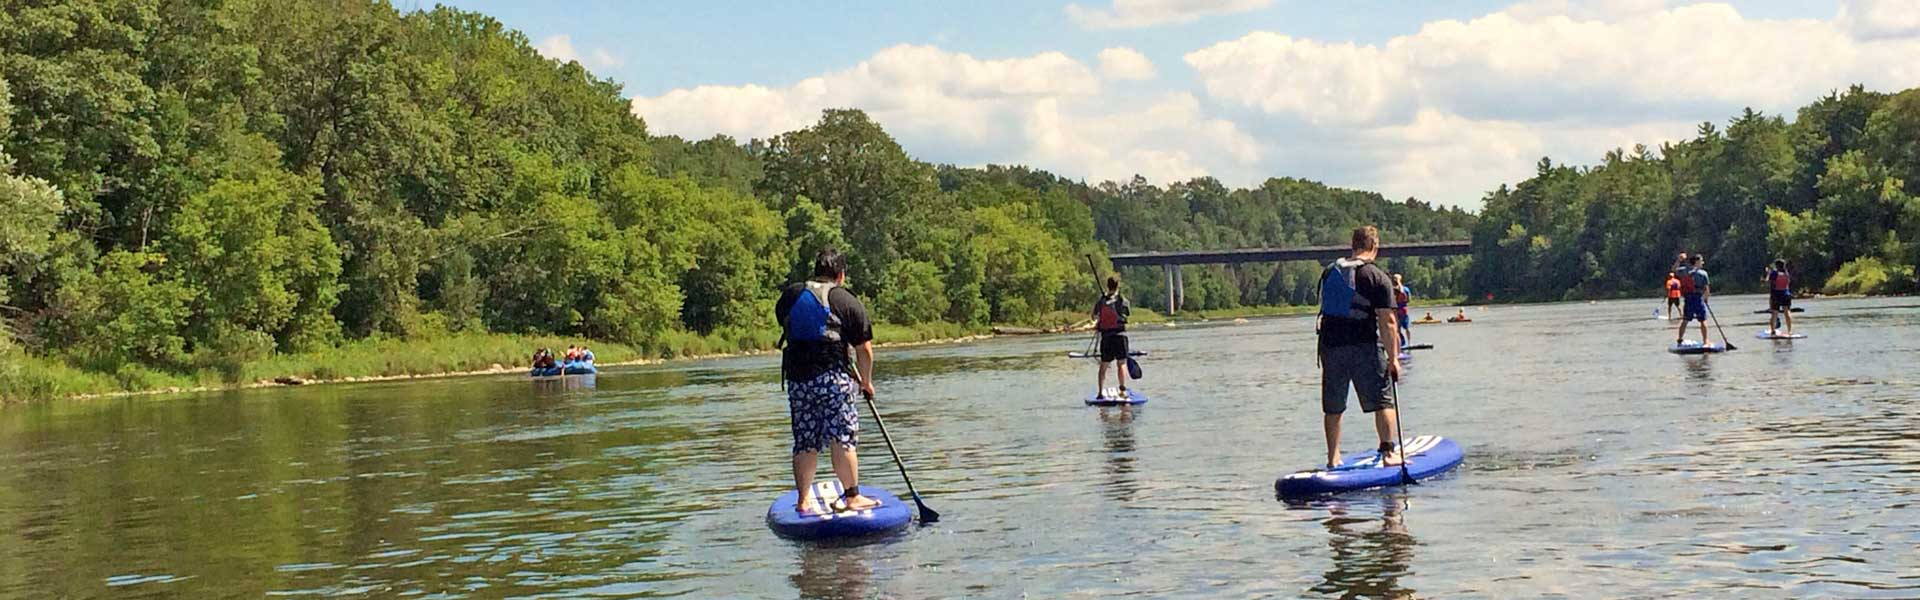 SUP Rentals on the Grand River near Paris Ontario